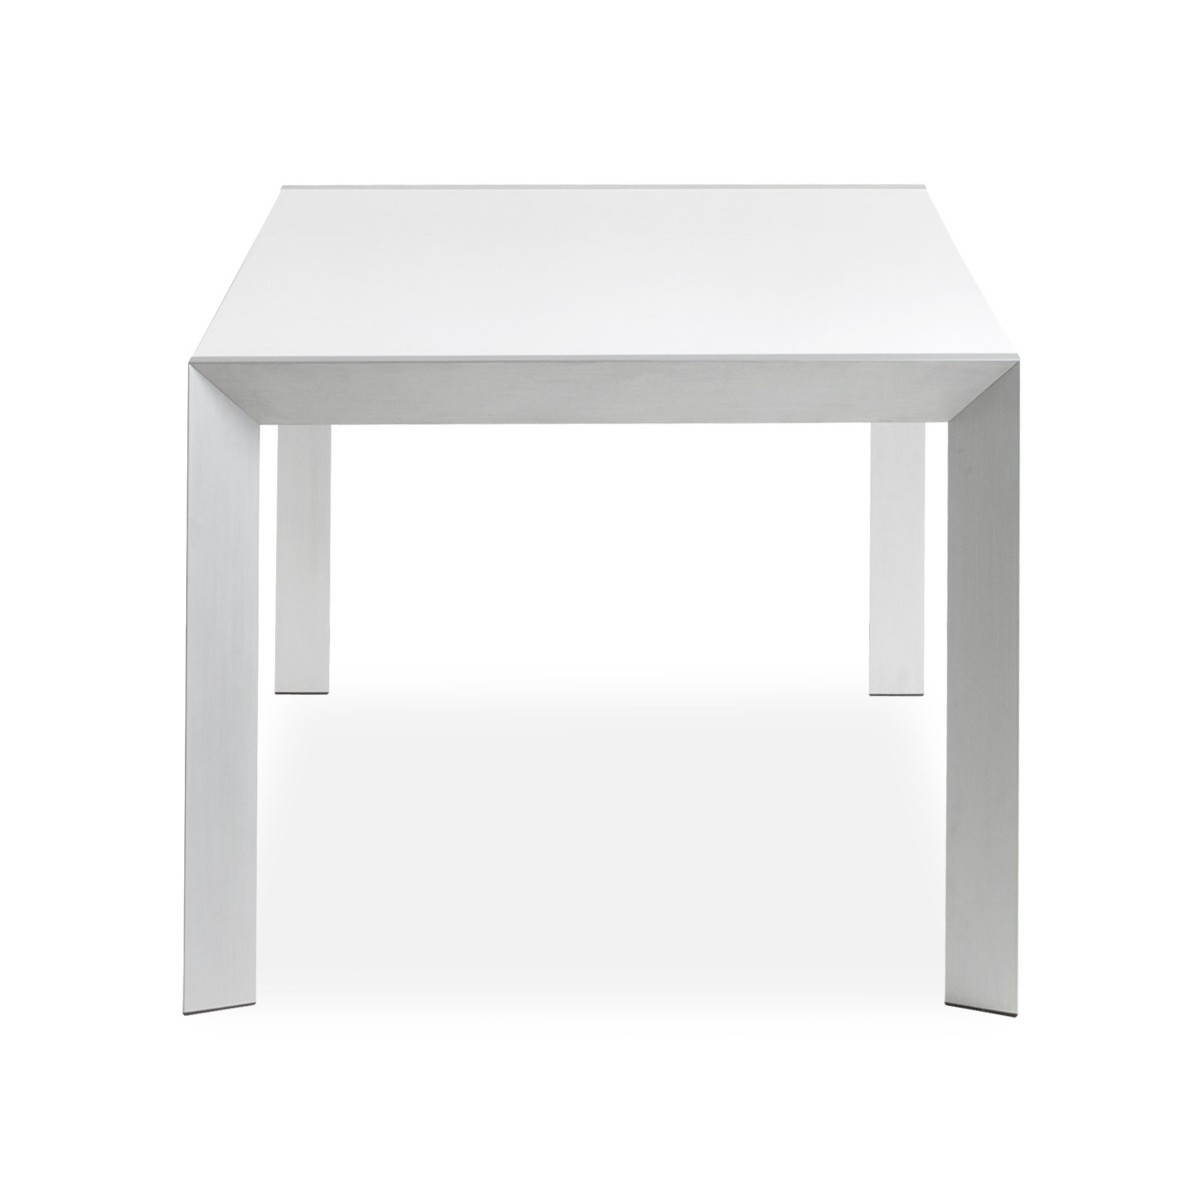 Table design rectangulaire avec rallonge fiona en bois laqu et aluminium bro - Table rallonge design ...